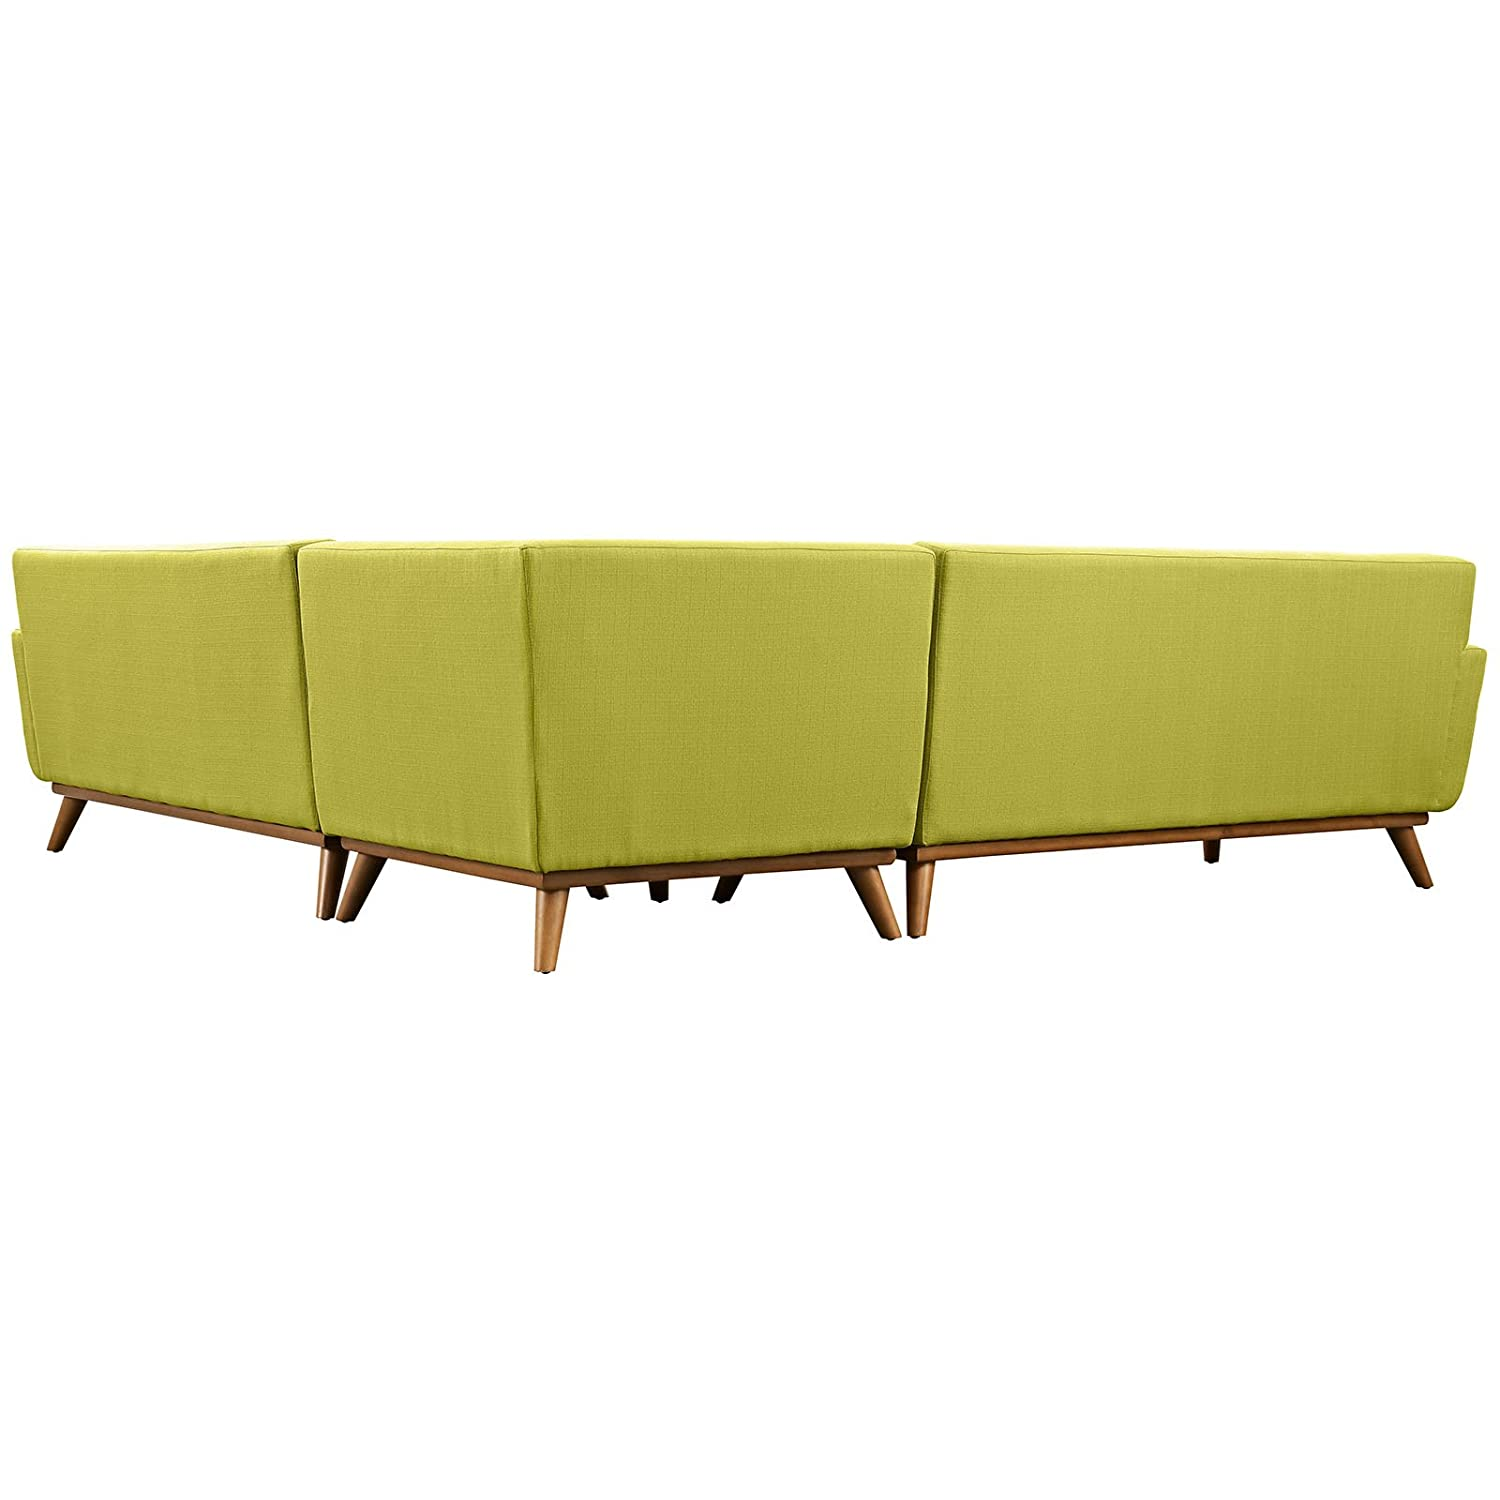 Amazon: Modern Contemporary L-Shaped Sectional Sofa, Green, Fabric:  Kitchen & Dining